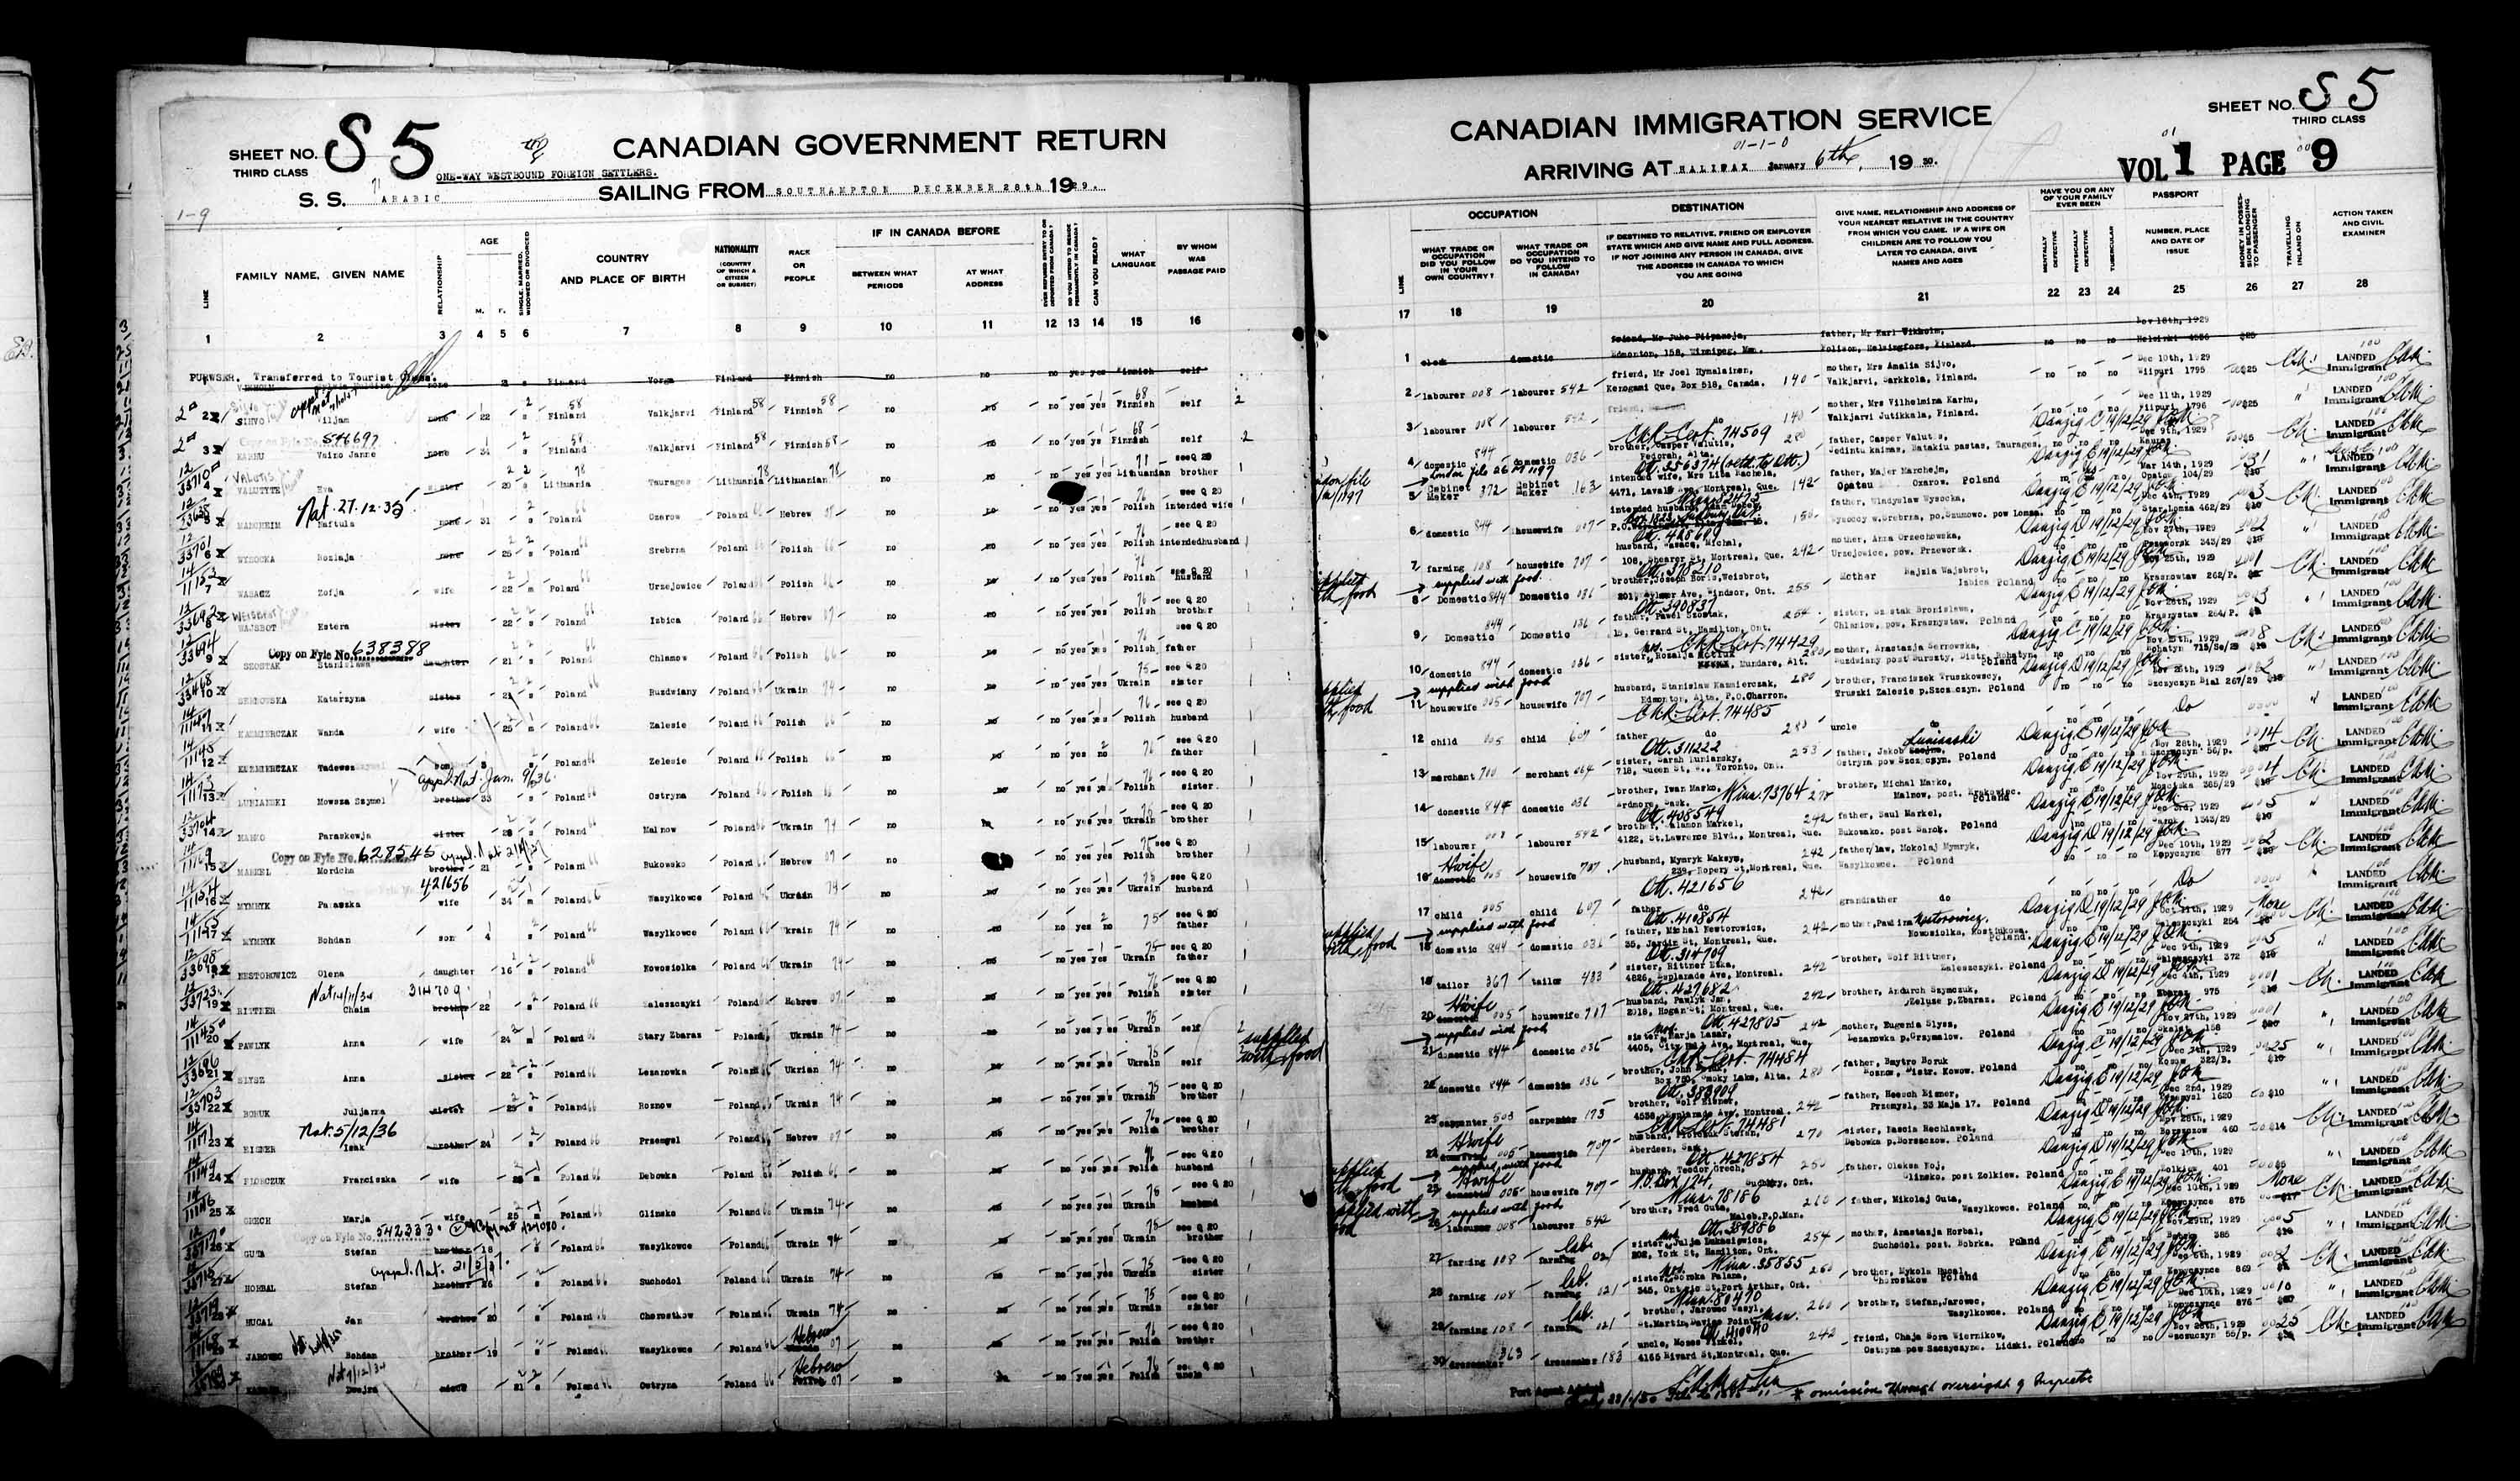 Title: Passenger Lists: Halifax (1925-1935) - Mikan Number: 134853 - Microform: t-14823